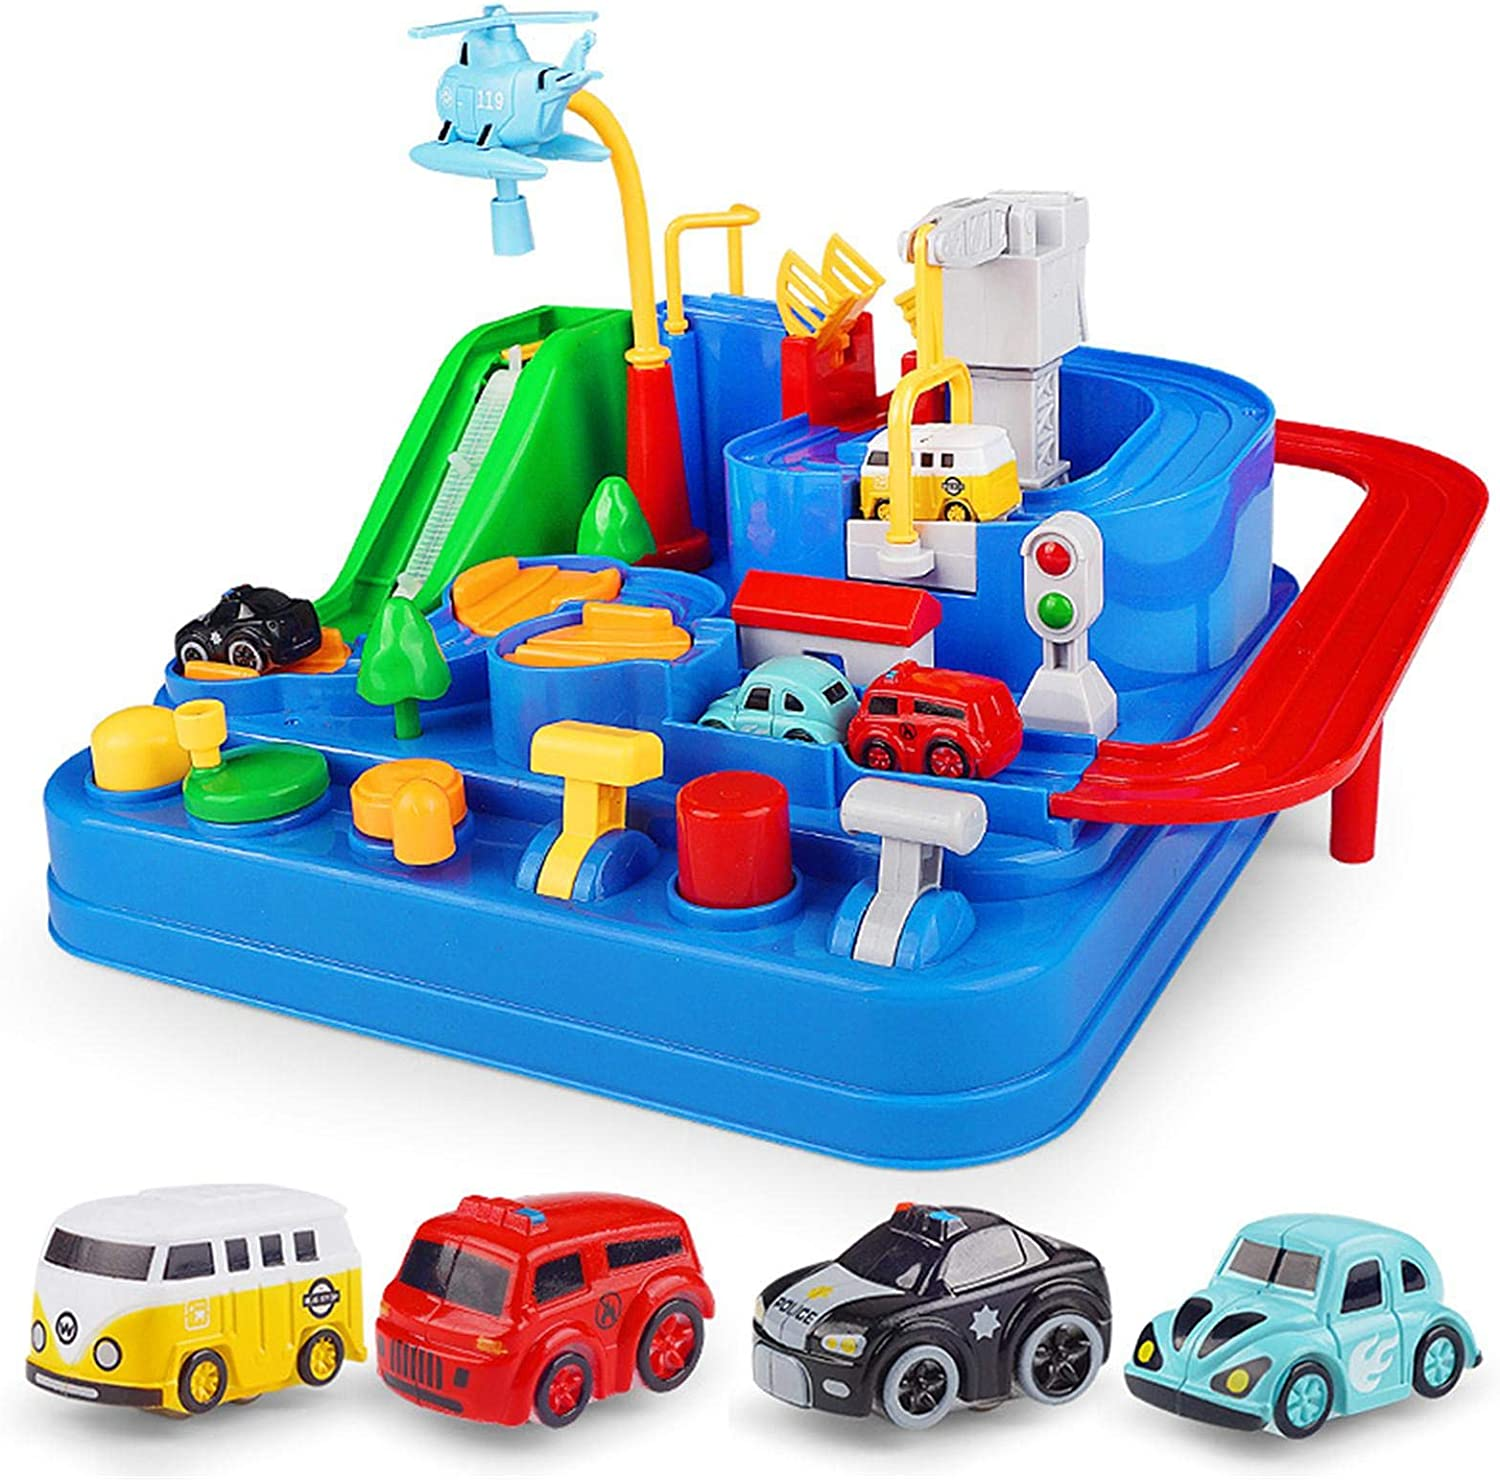 Xiaoyaoyou Safe Smooth Car Race Educational Tracks Beauty products Philadelphia Mall Adventure Toy